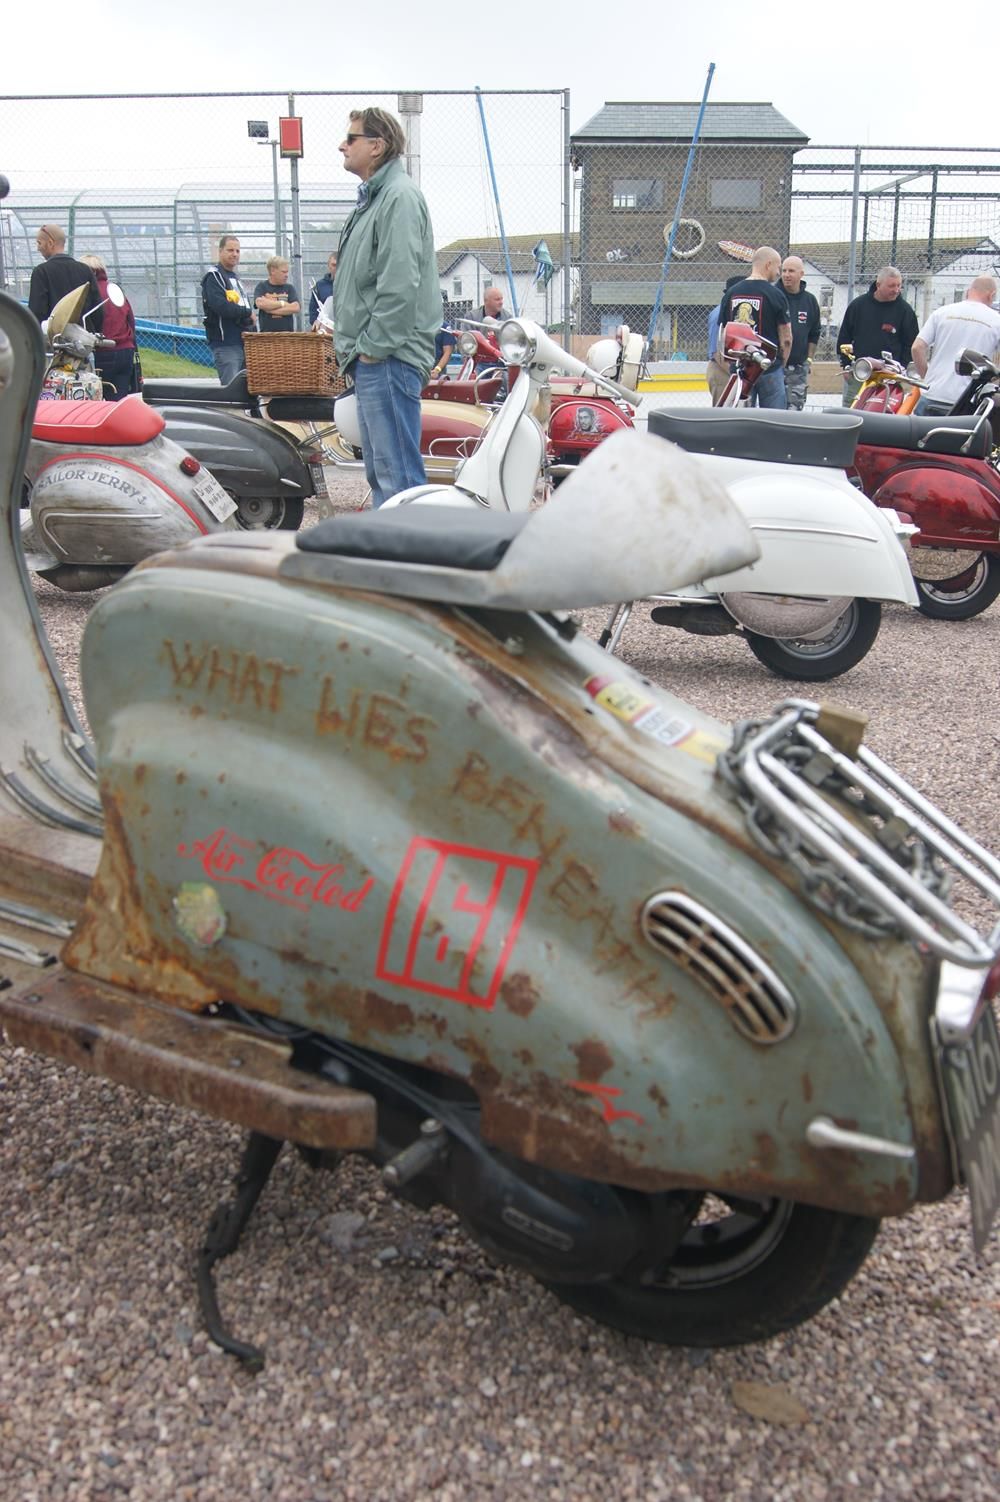 Lambretta LD with rusty text on the side panels, What Lies Beneath